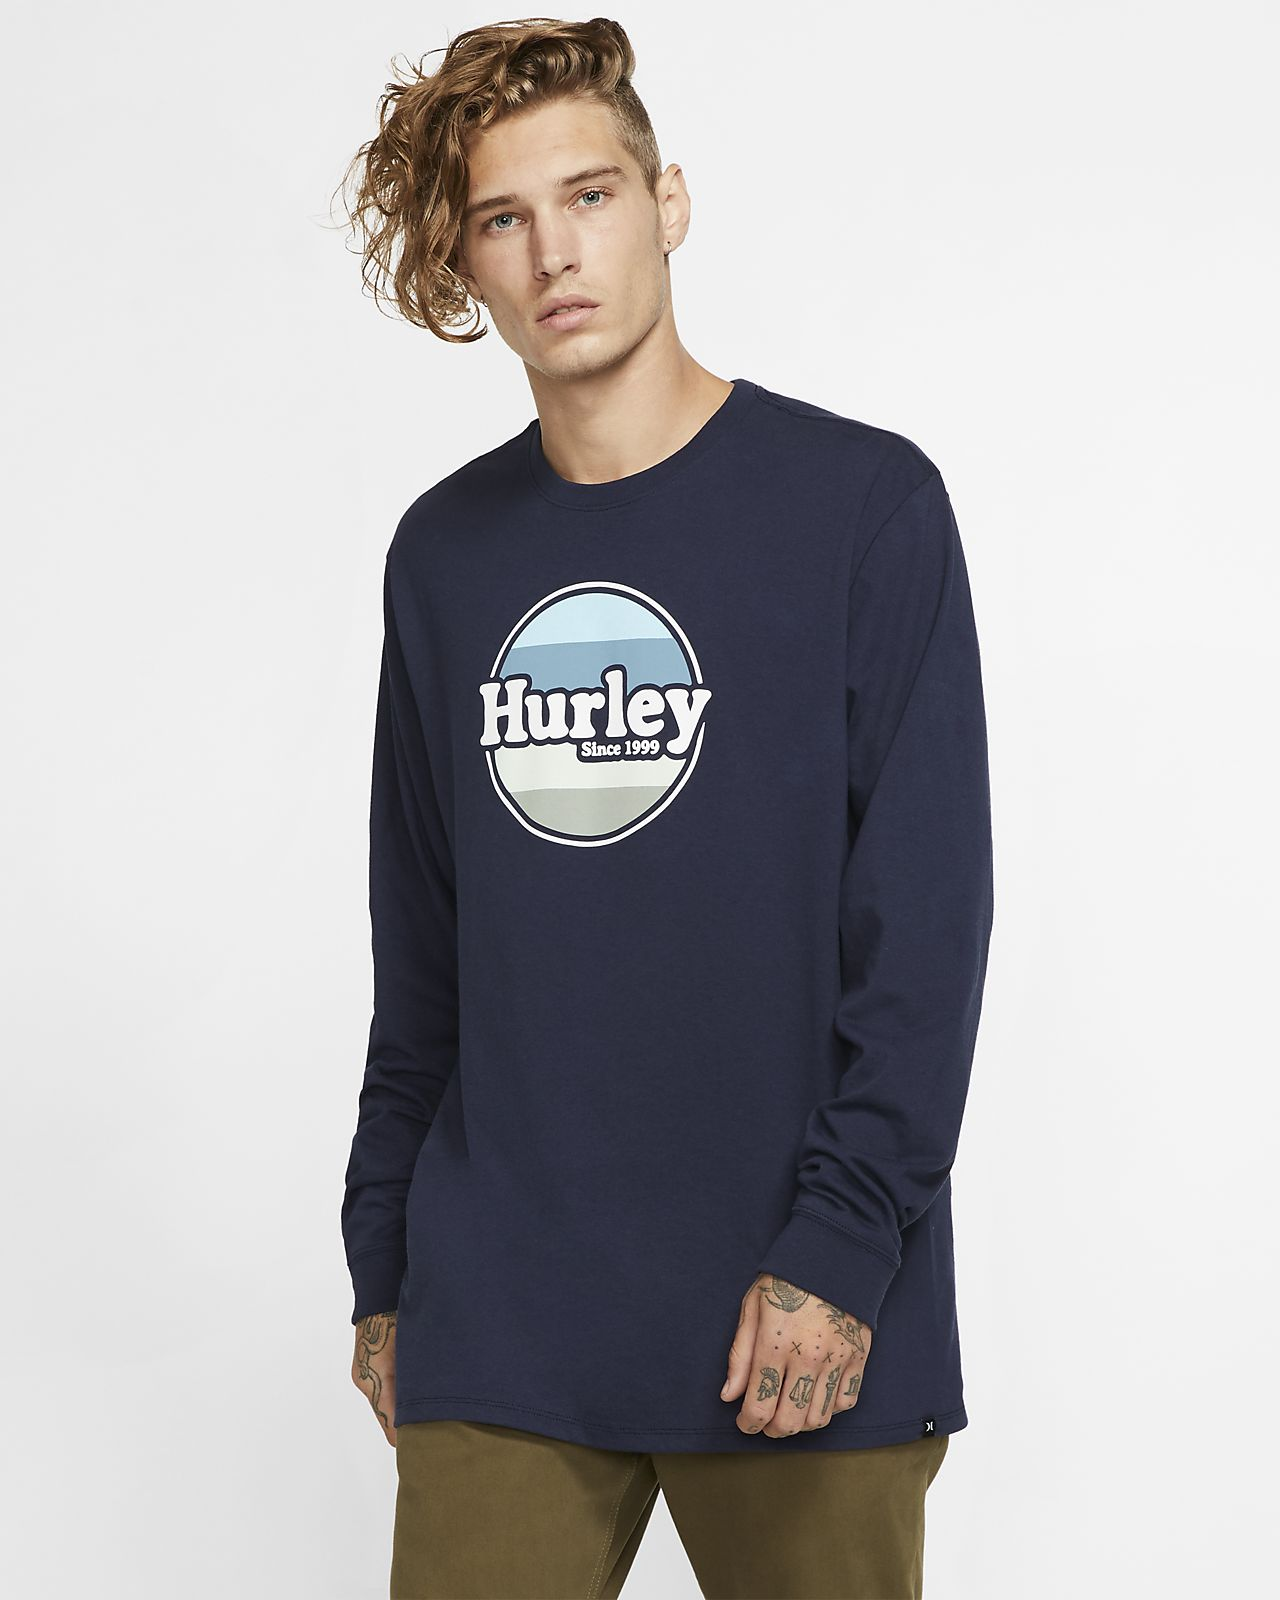 Tee-shirt à manches longues Hurley Jammer pour Homme